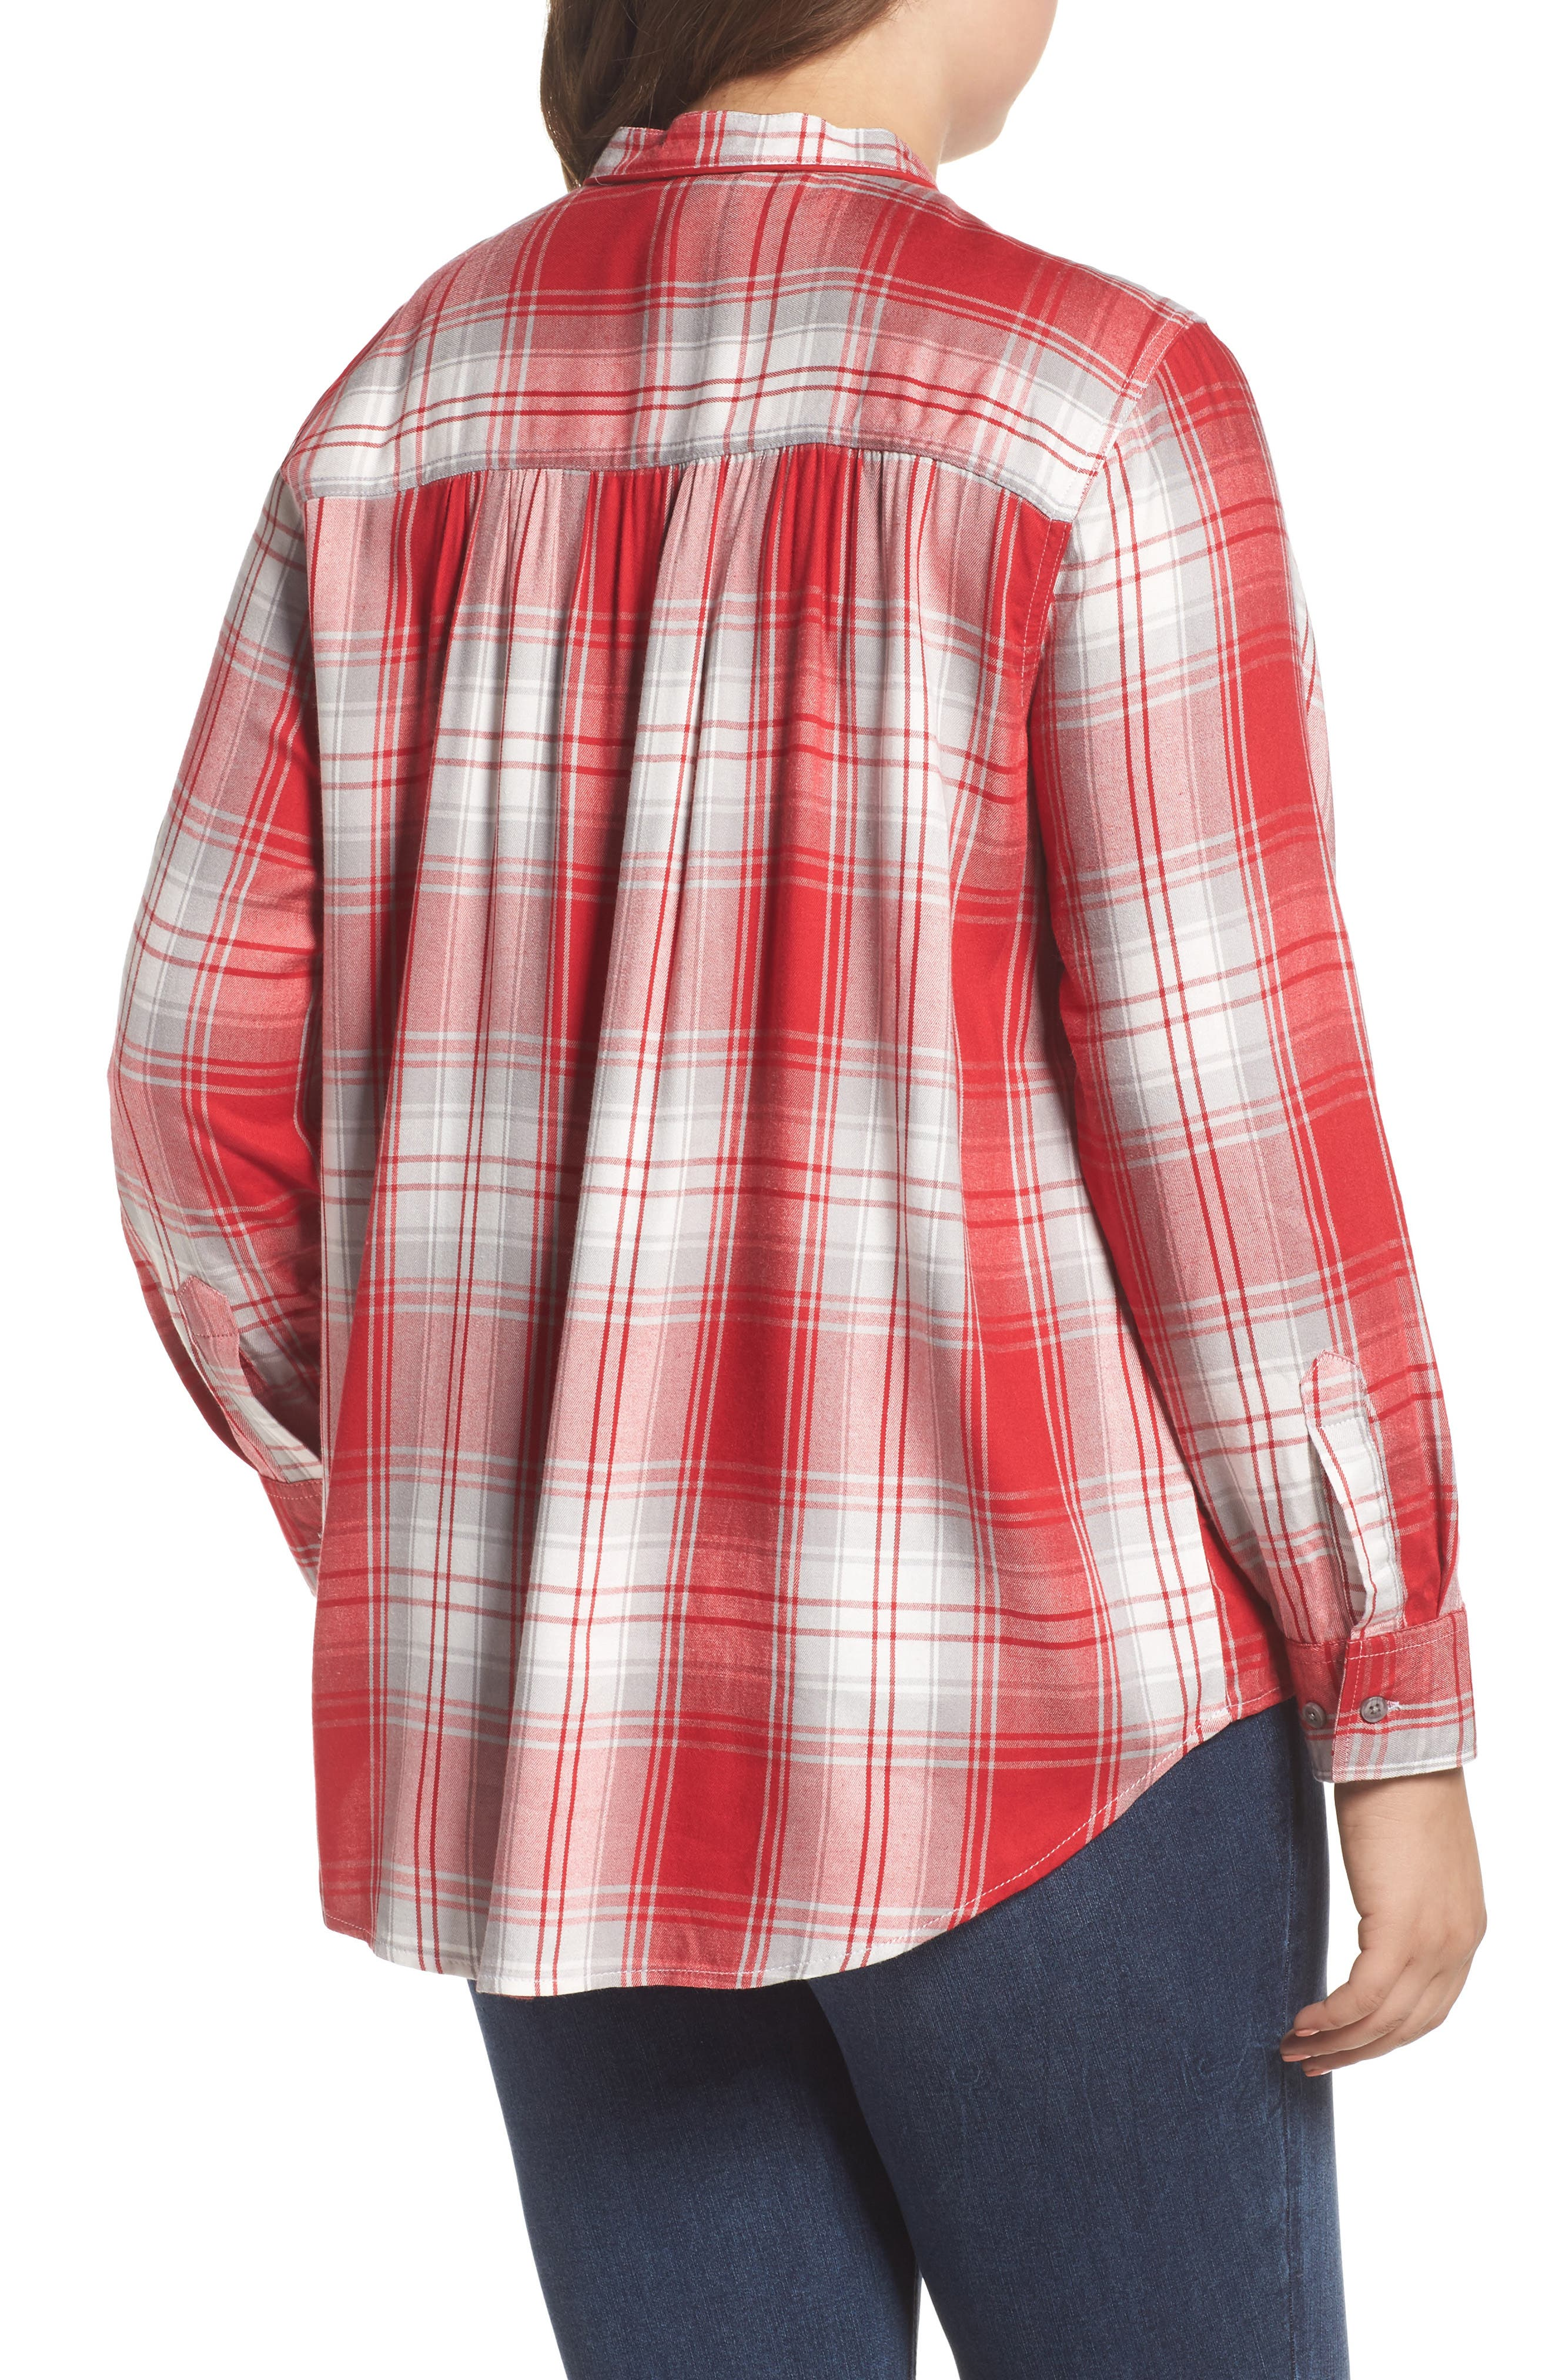 Alternate Image 2  - Melissa McCarthy Seven7 Plaid Shirt (Plus Size)